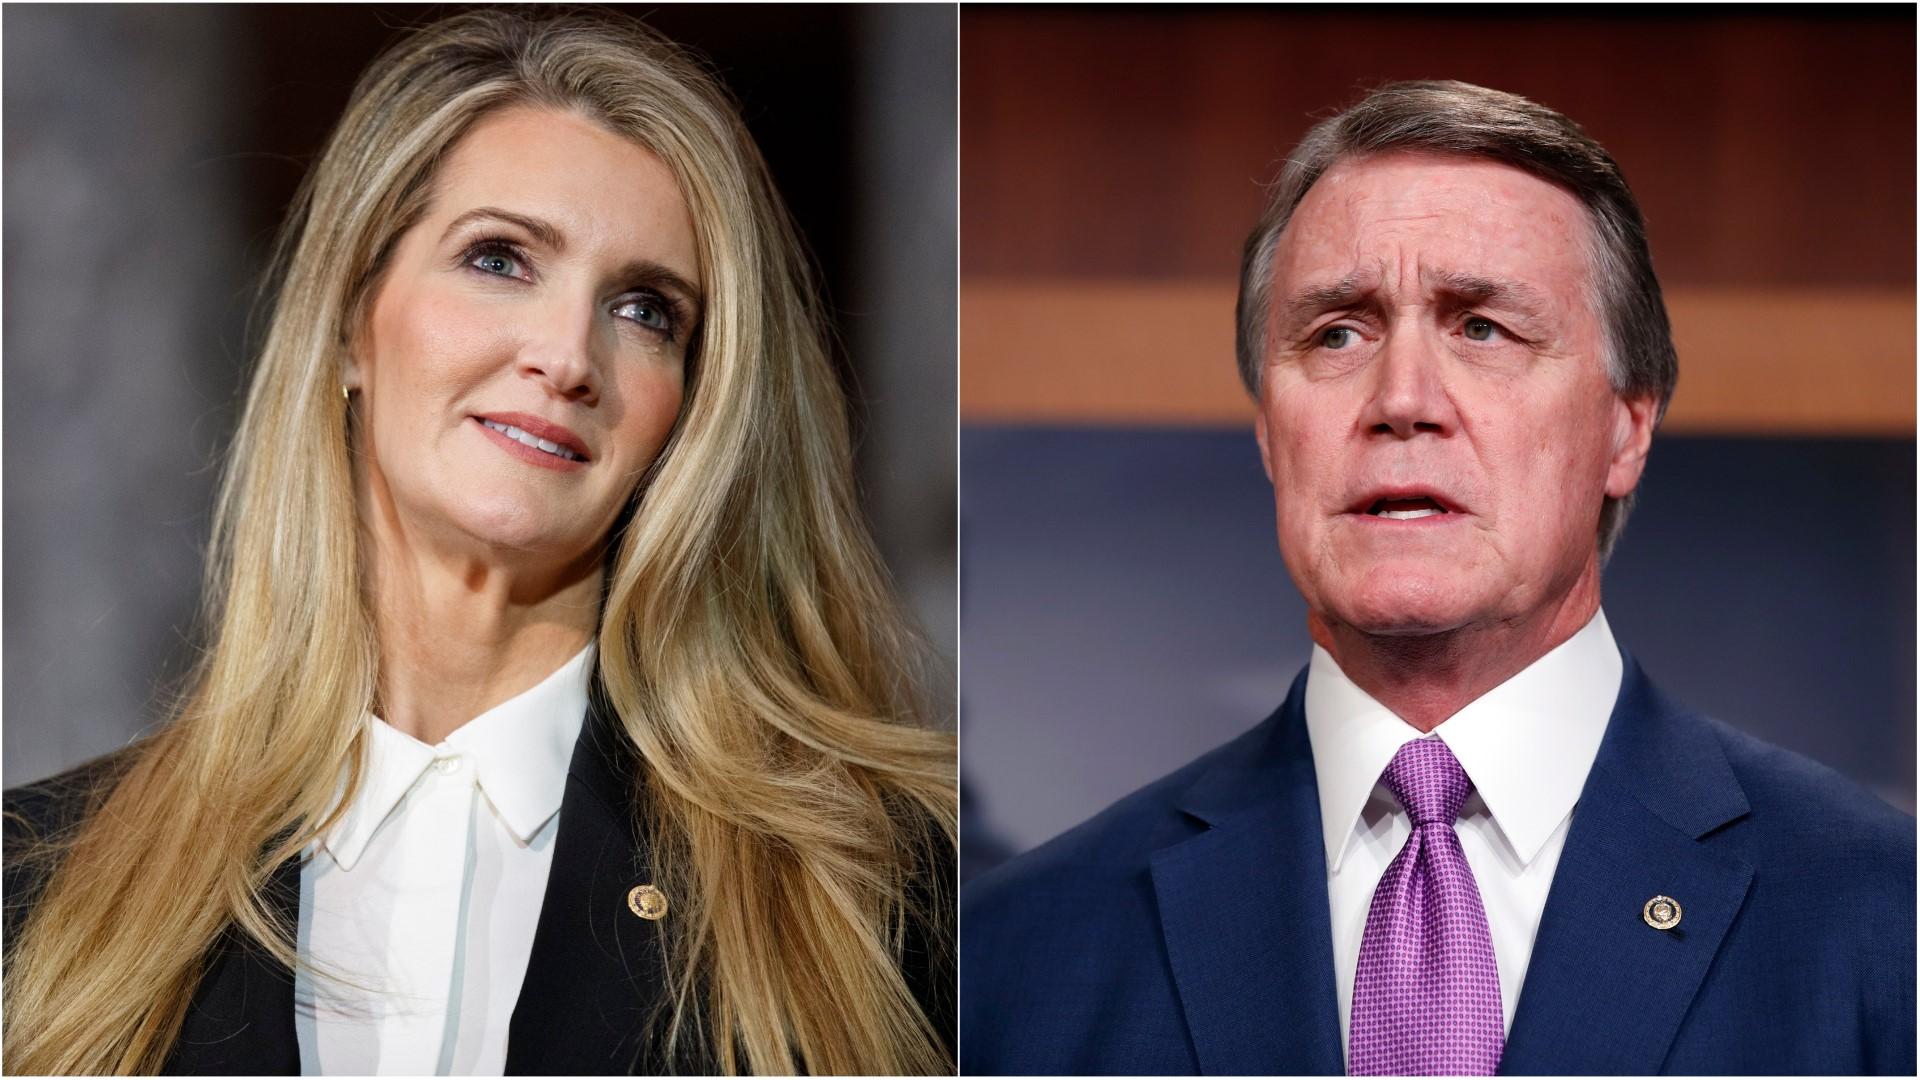 Kelly Loeffler, David Perdue stock trades under fire | 11alive.com